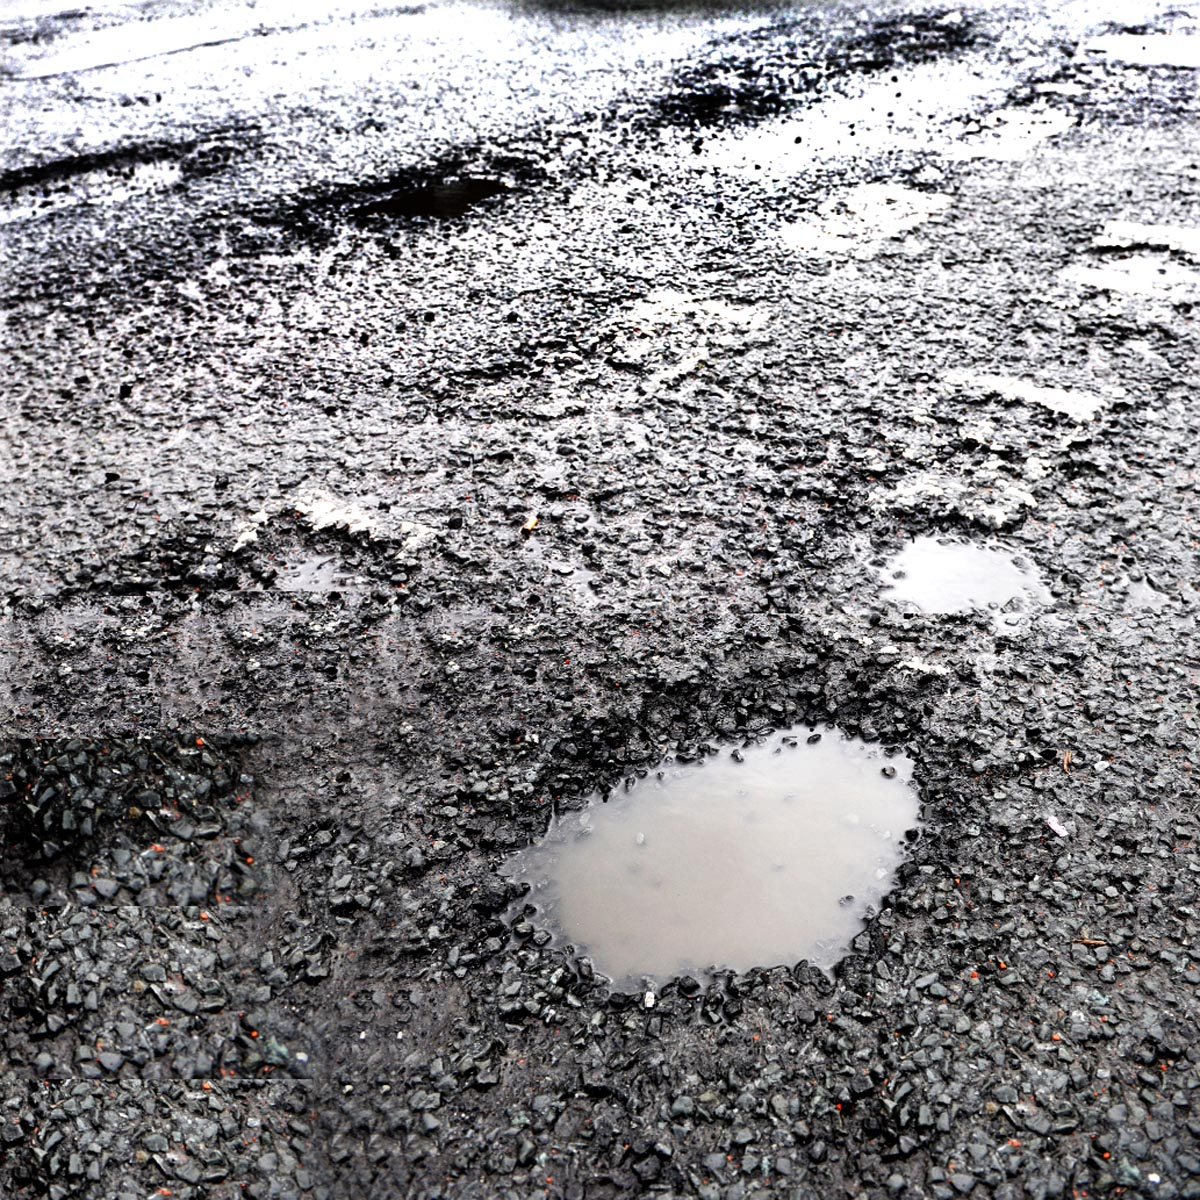 Weather update: Potholes prime concern as emergency road calls continue